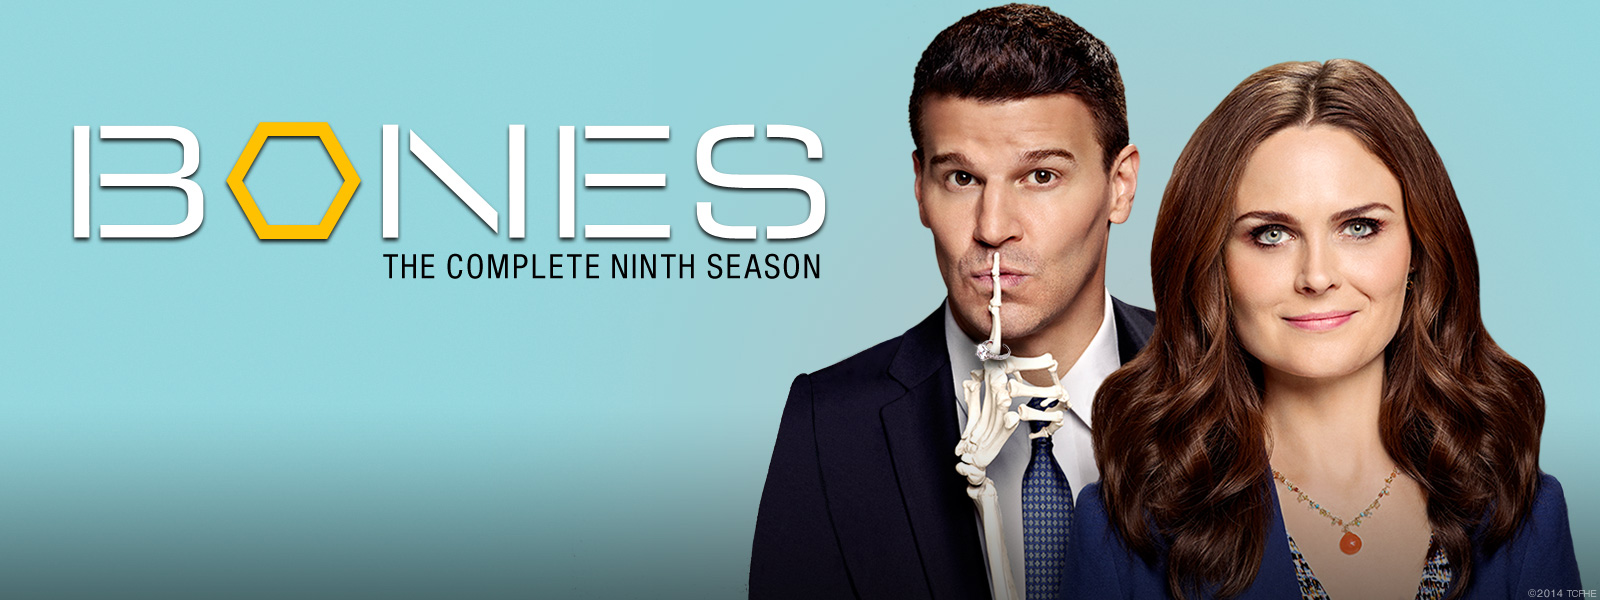 Bones The Complete Ninth Season